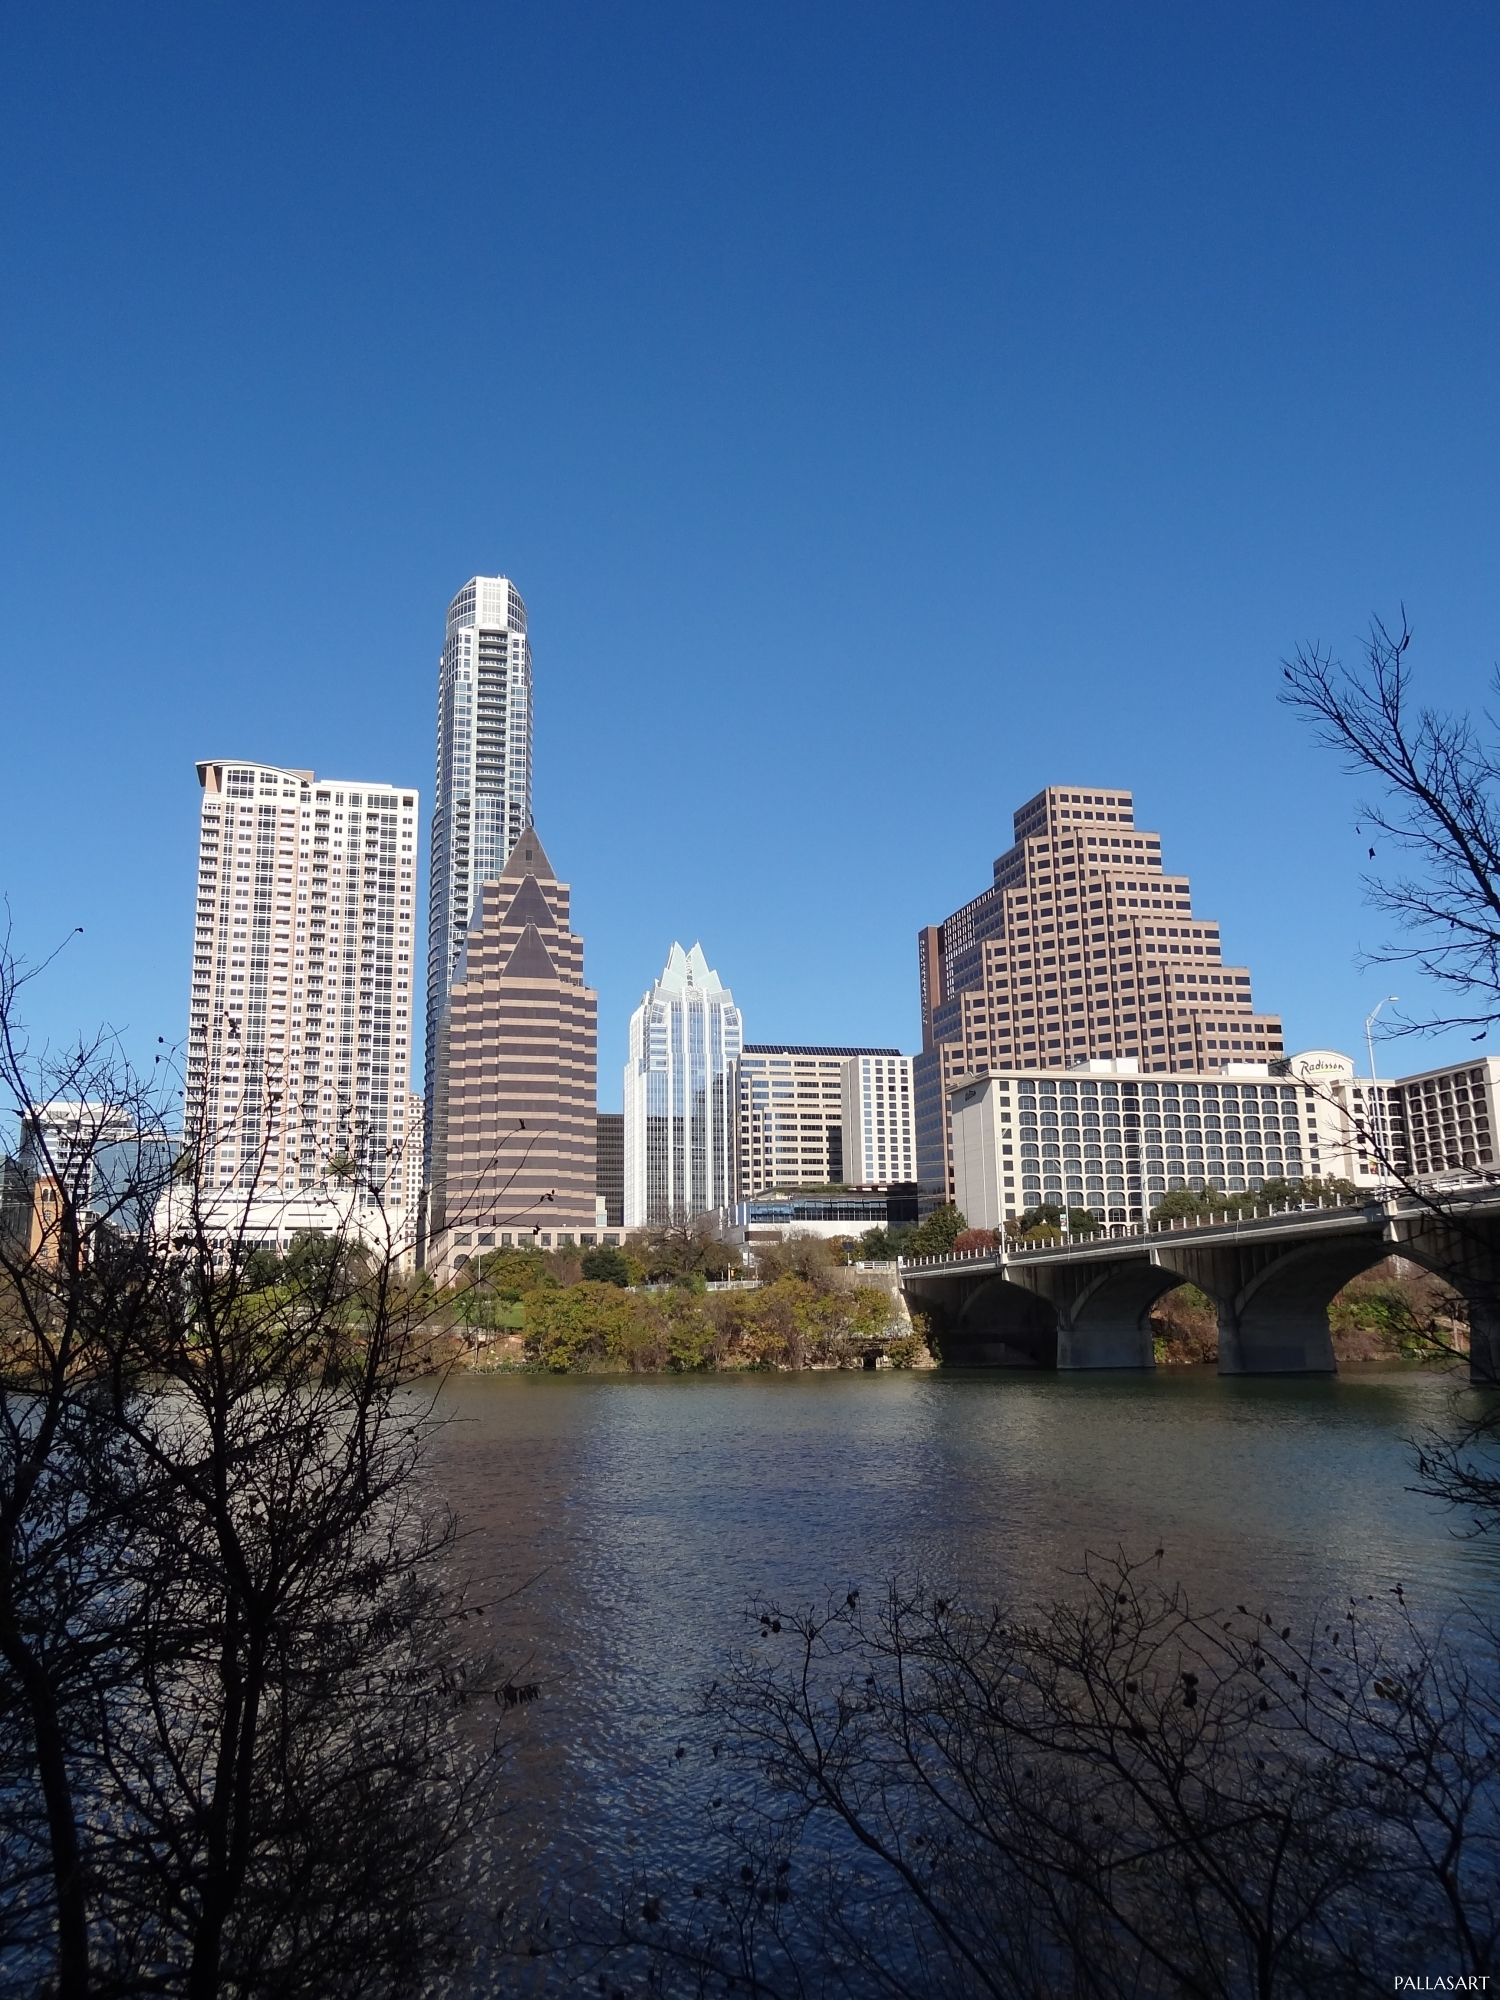 View of Austin Downtown from South Shore just west of Congress Ave. Bridge